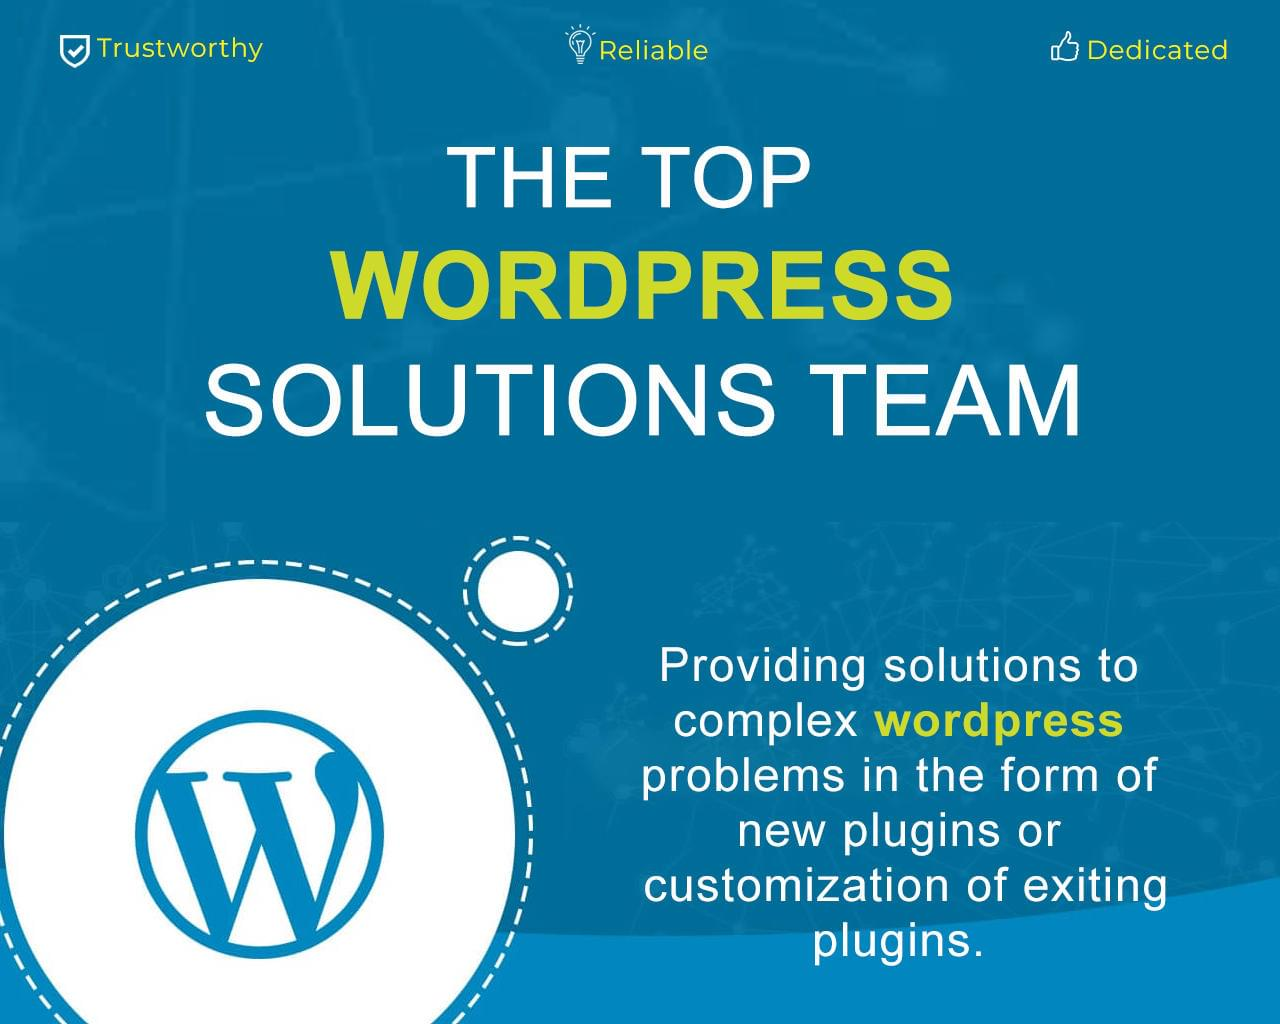 Custom Wordpress Plugin Solutions by cWebConsultants - 115876